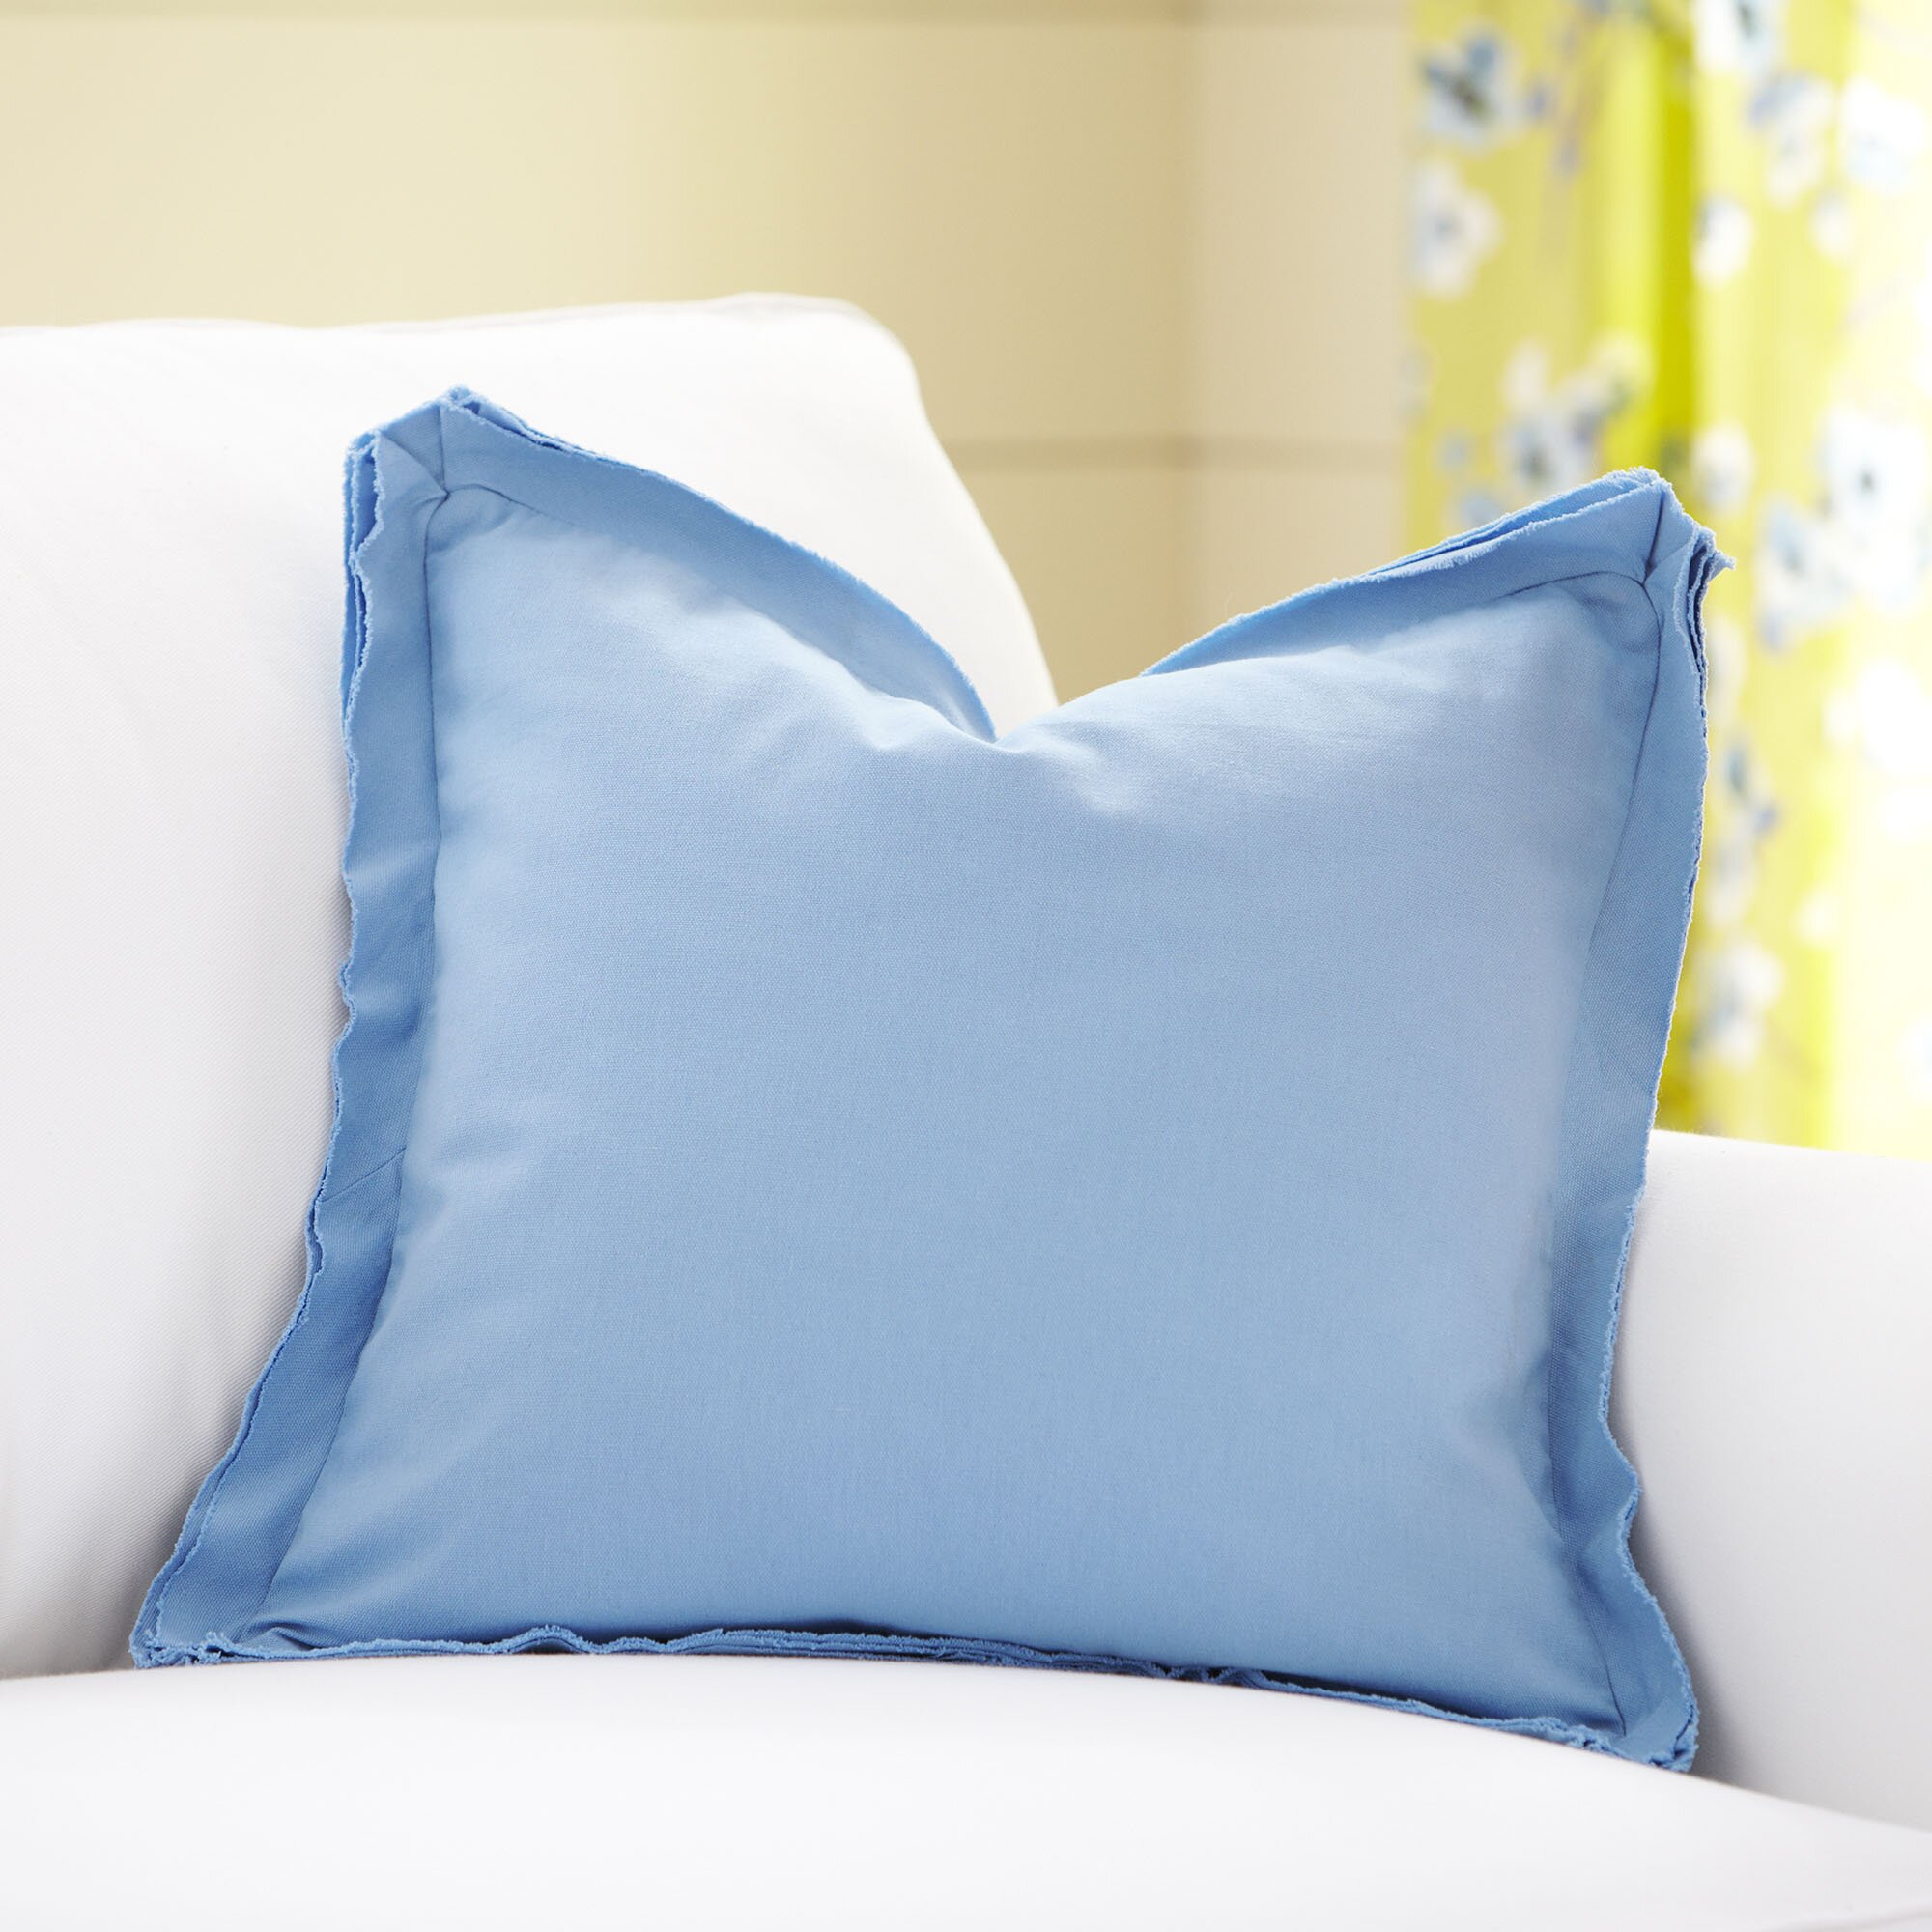 Wayfair Decorative Pillow Covers : Birch Lane Joelle Pillow Cover & Reviews Wayfair